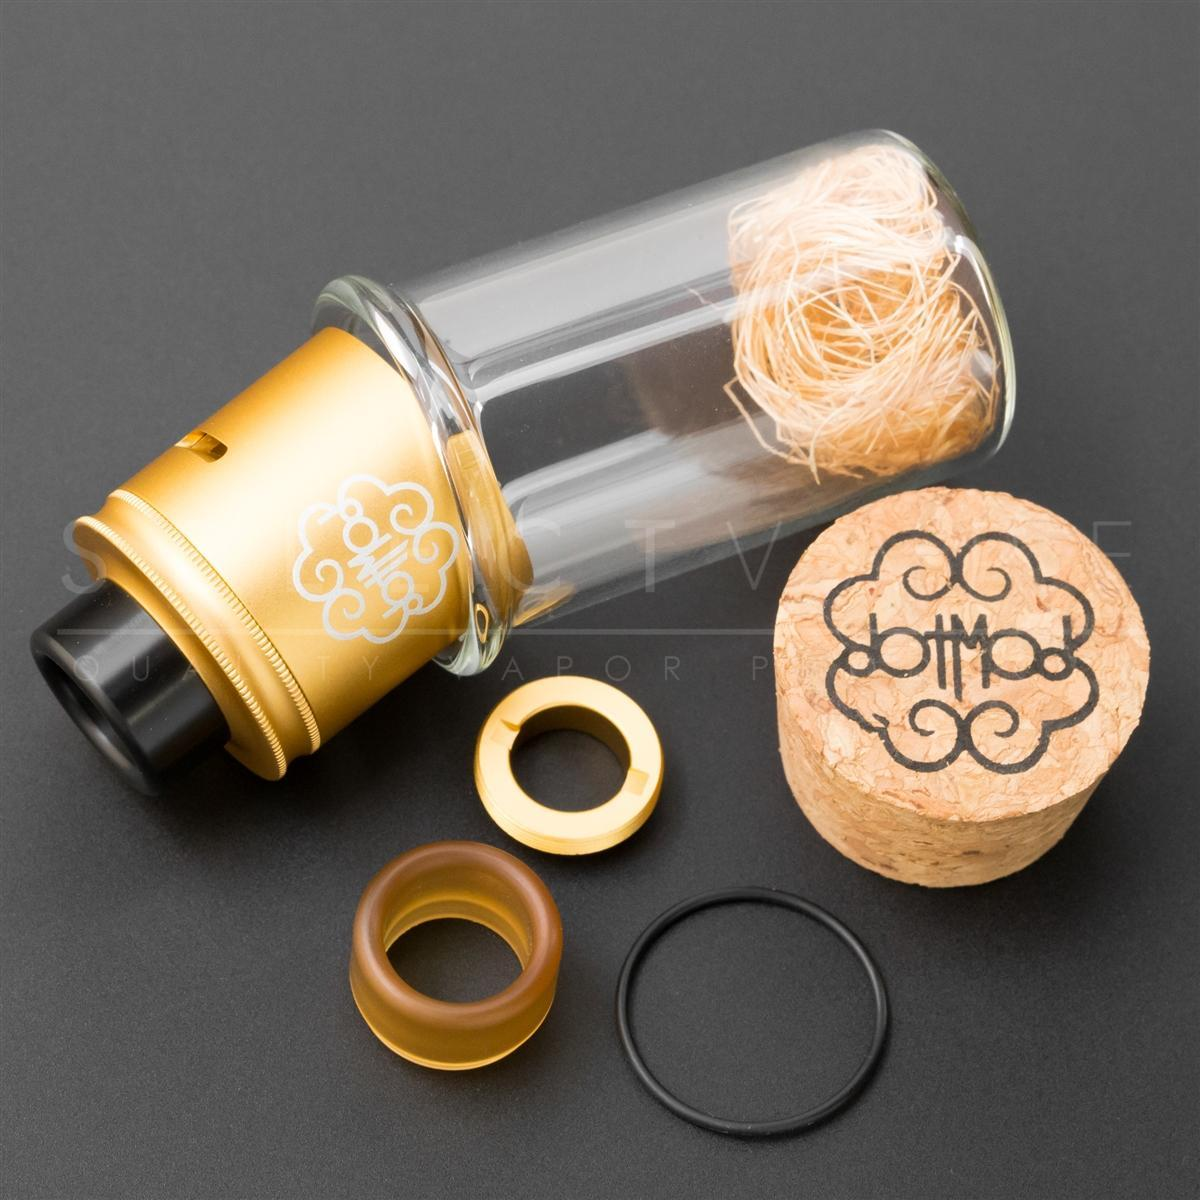 Dotmod 24mm Conversion Cap - Gold